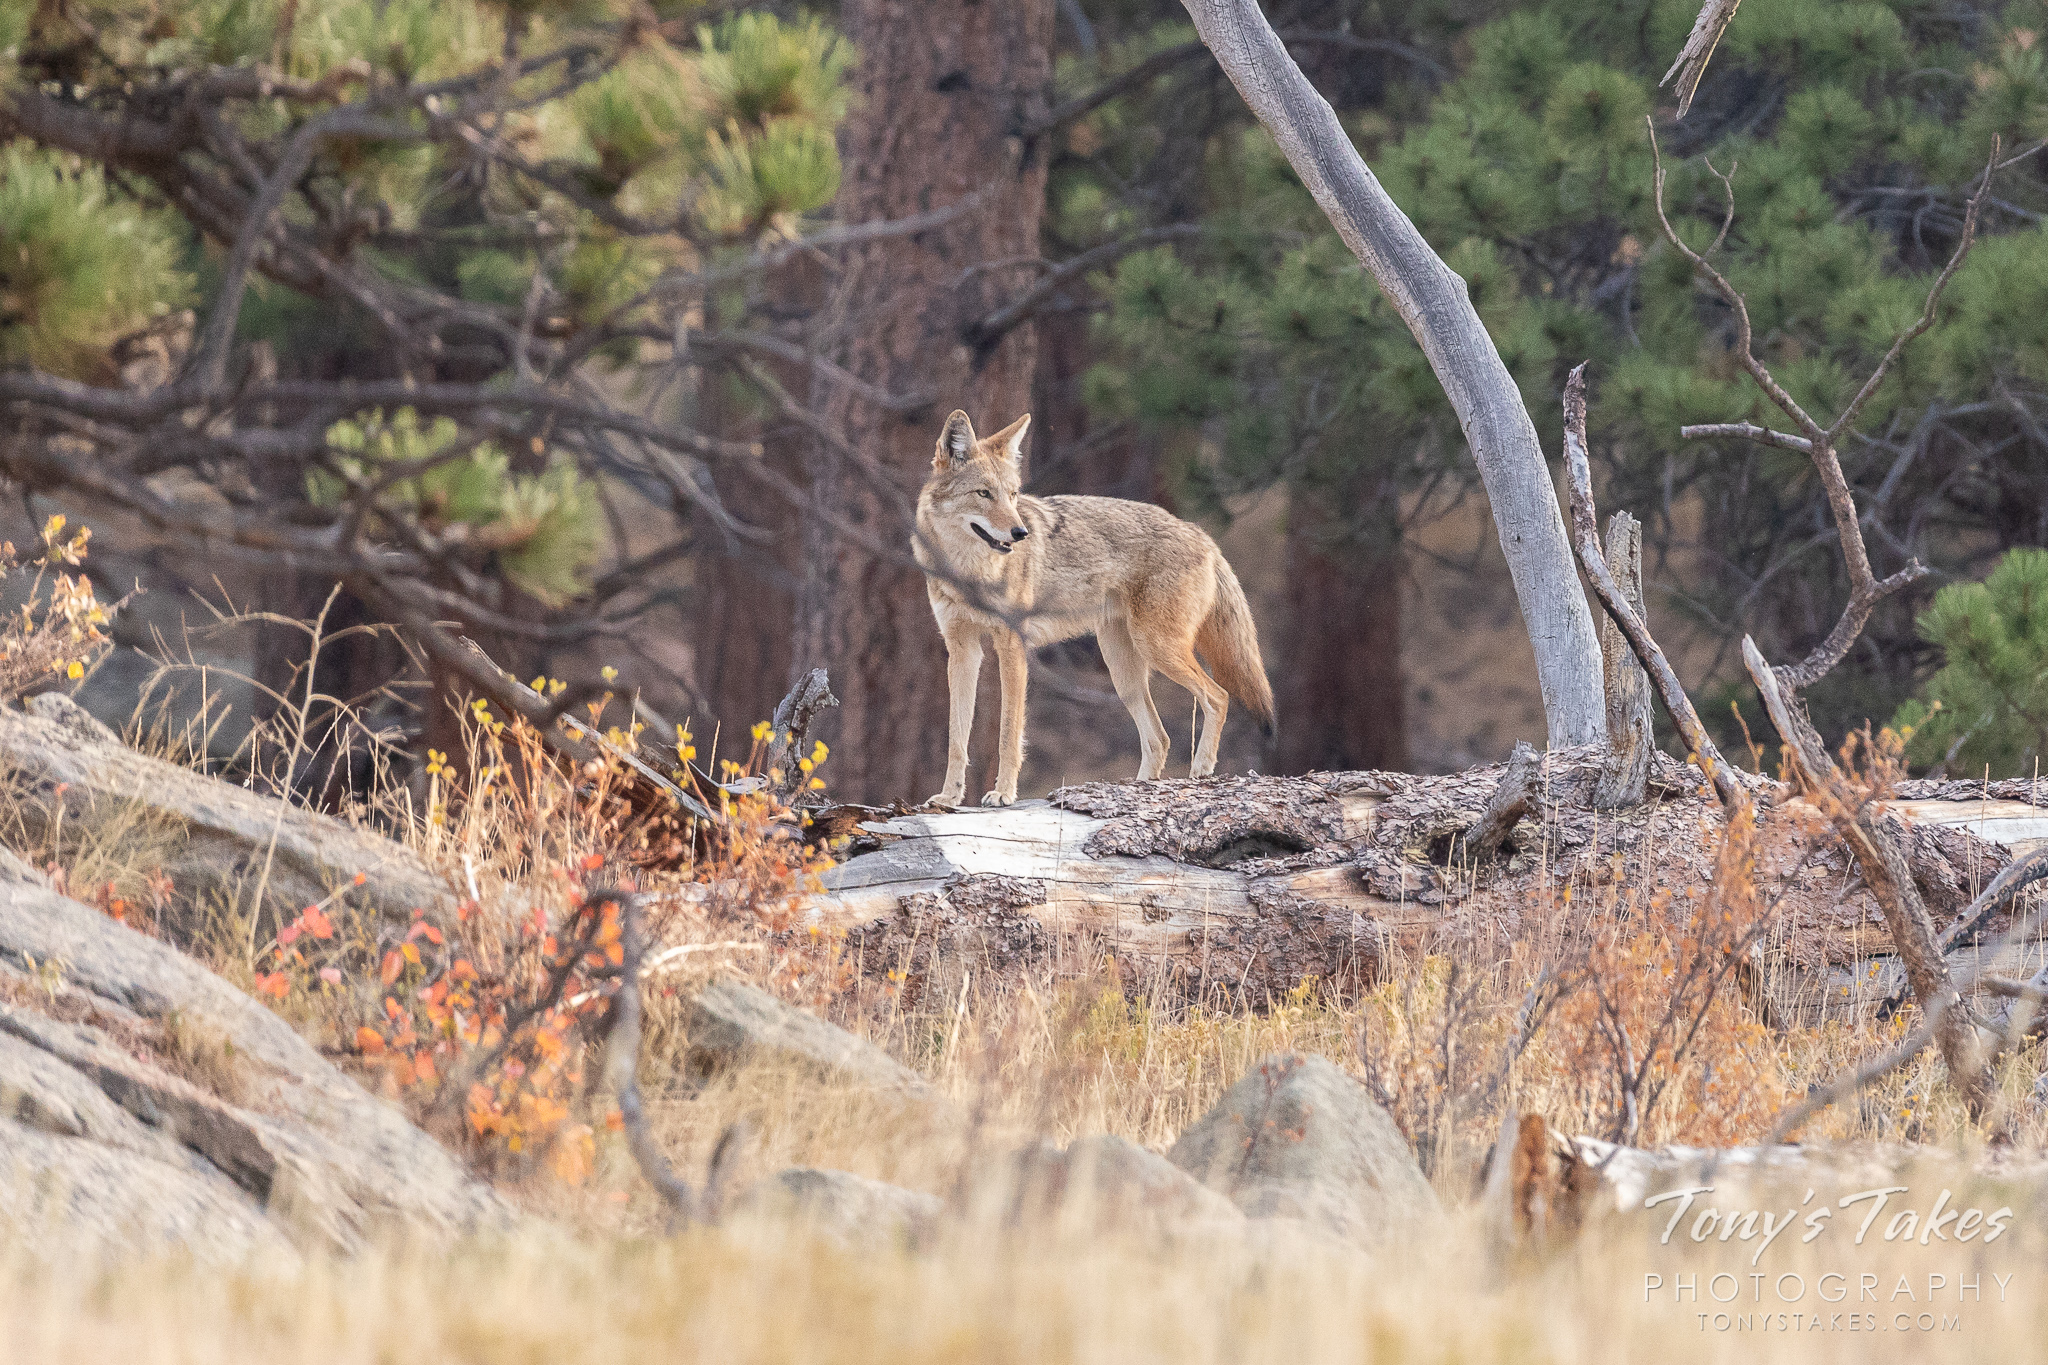 A coyote stands on top of a downed tree, keeping watch in Rocky Mountain National Park. (© Tony's Takes)